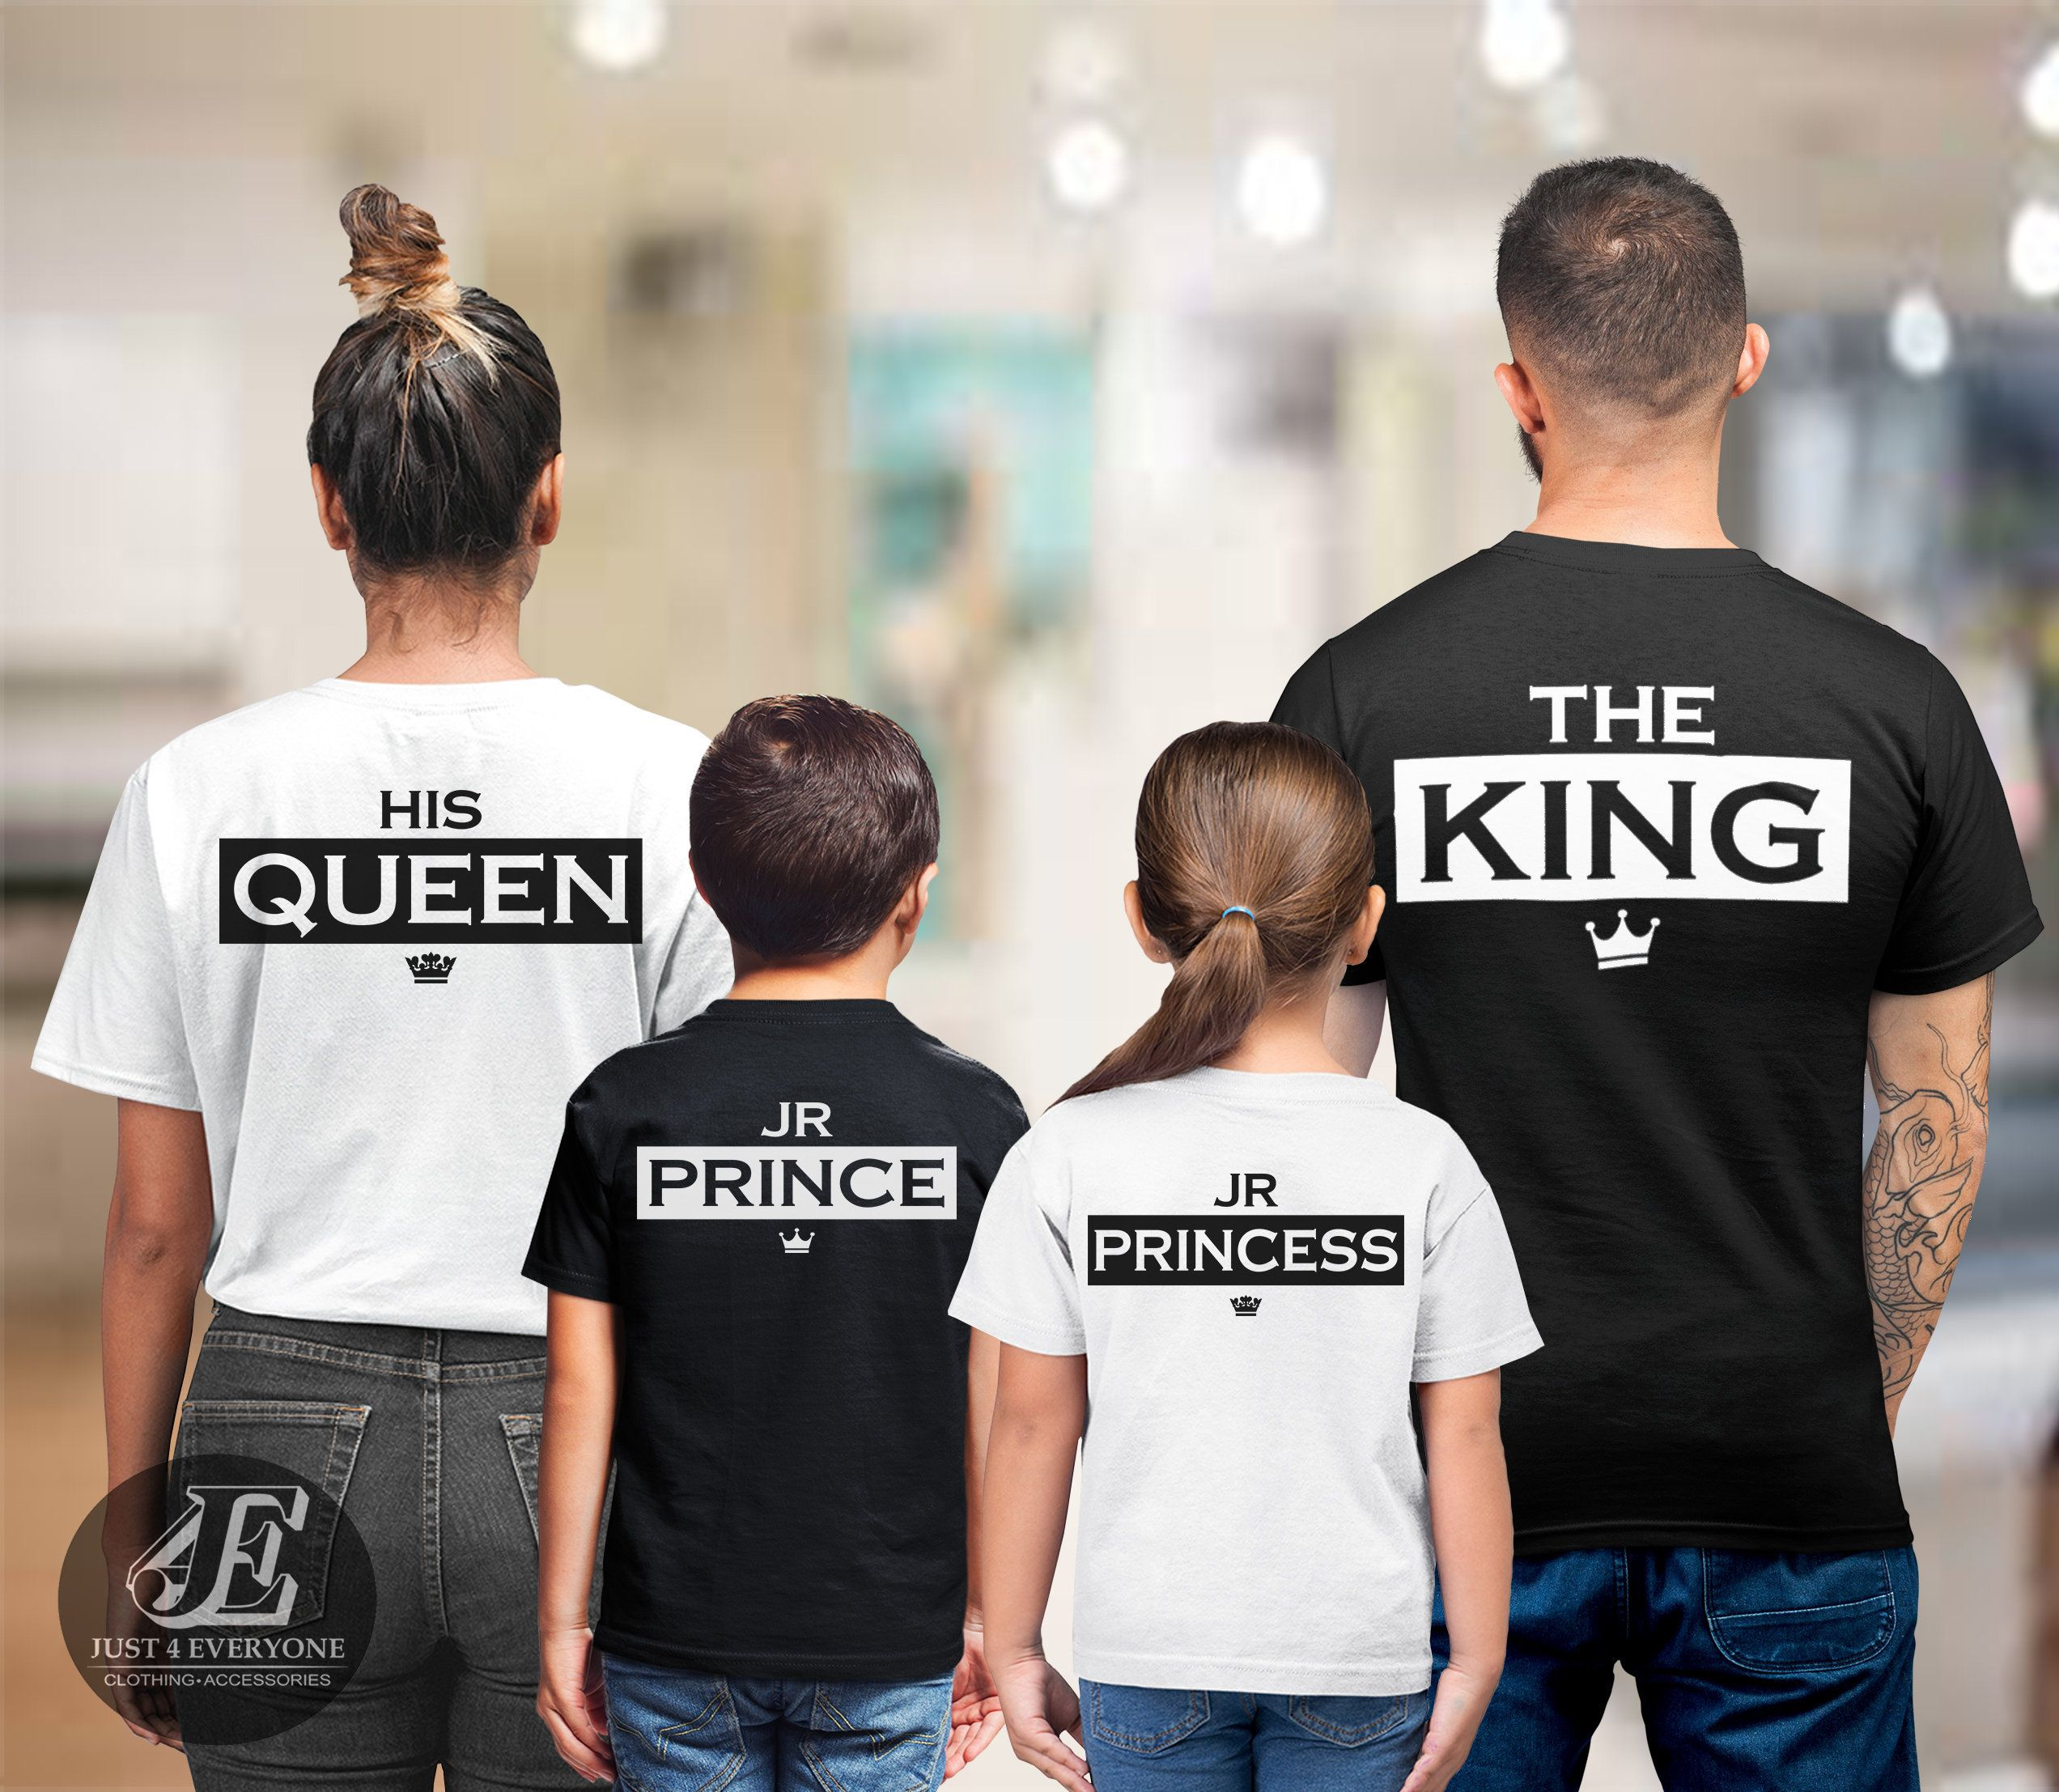 King Queen Shirts Prince Princess Couples outfit Family matching Tshirts